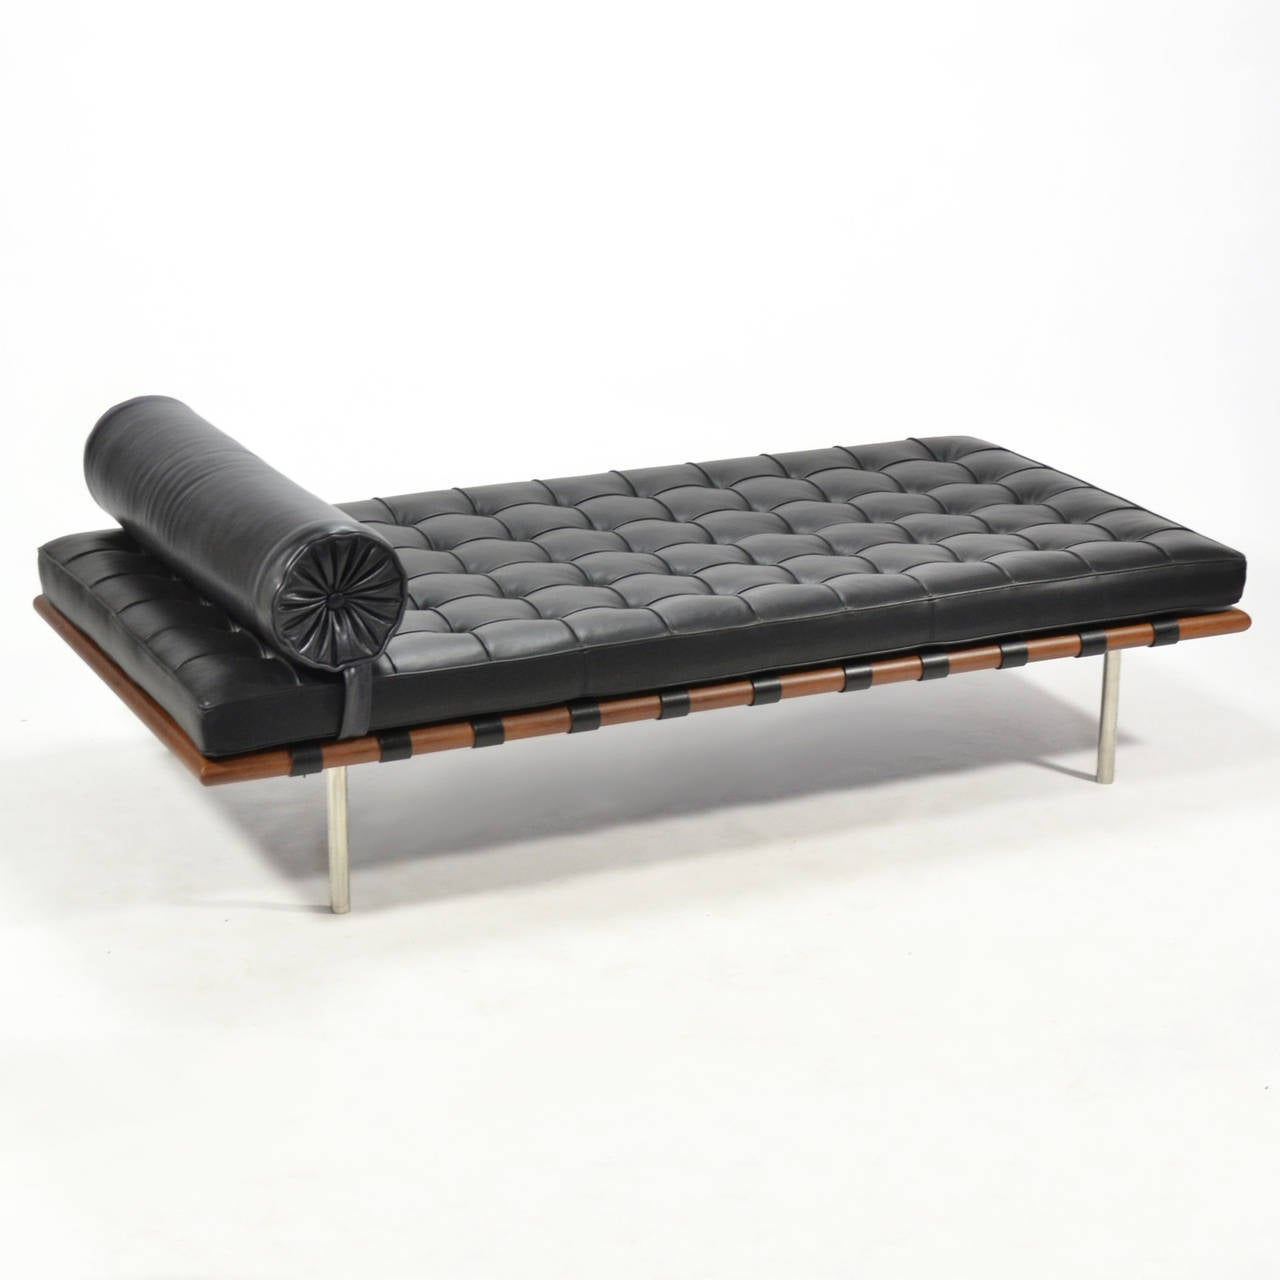 ludwig mies van der rohe barcelona daybed by knoll at 1stdibs. Black Bedroom Furniture Sets. Home Design Ideas